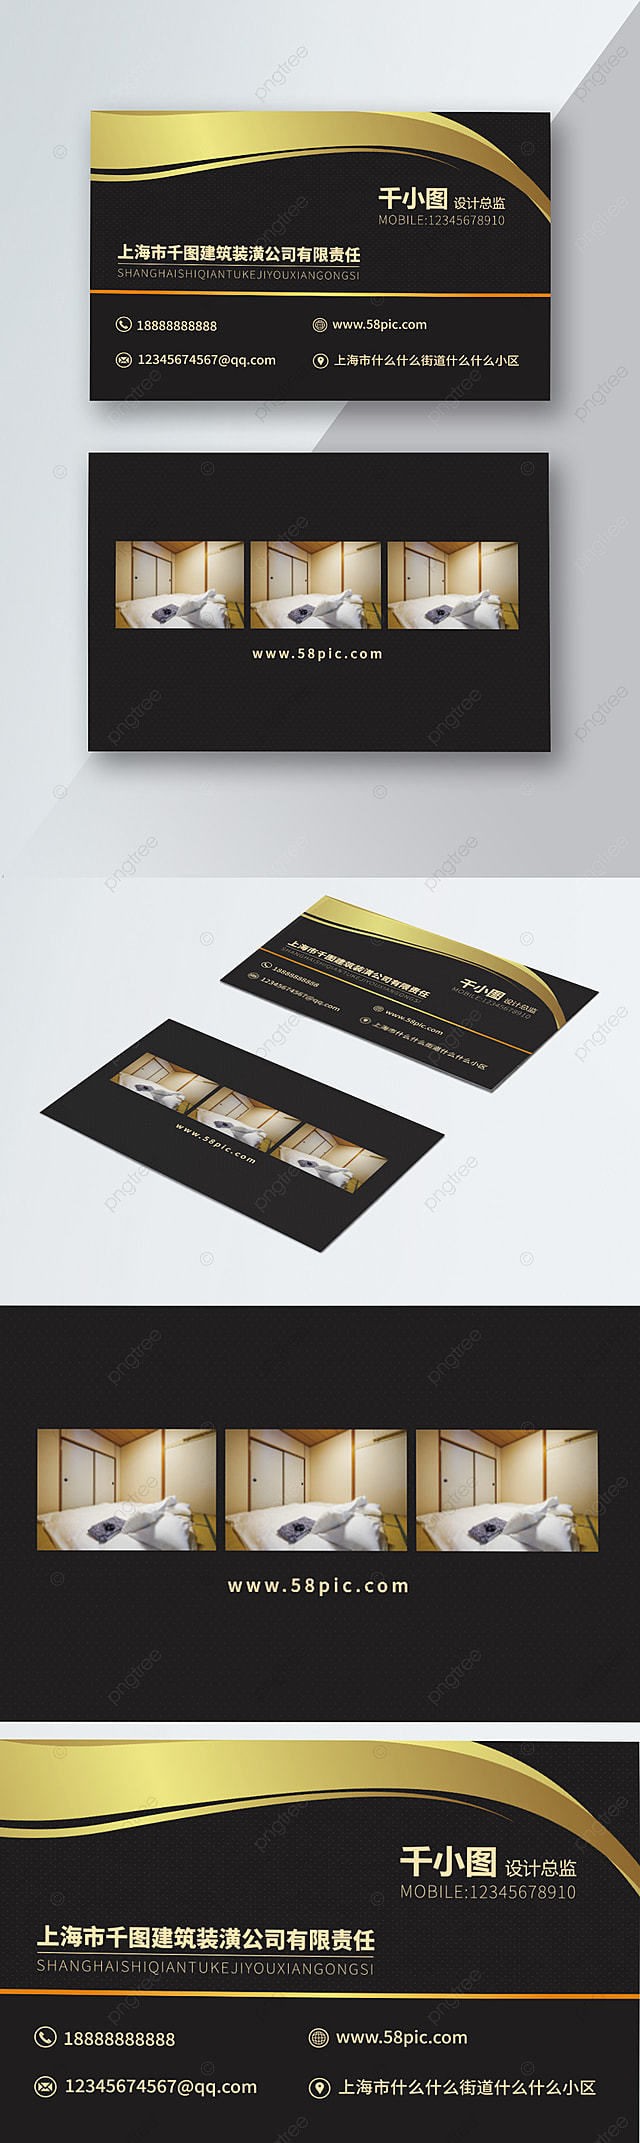 Steel Doors And Windows Business Cards